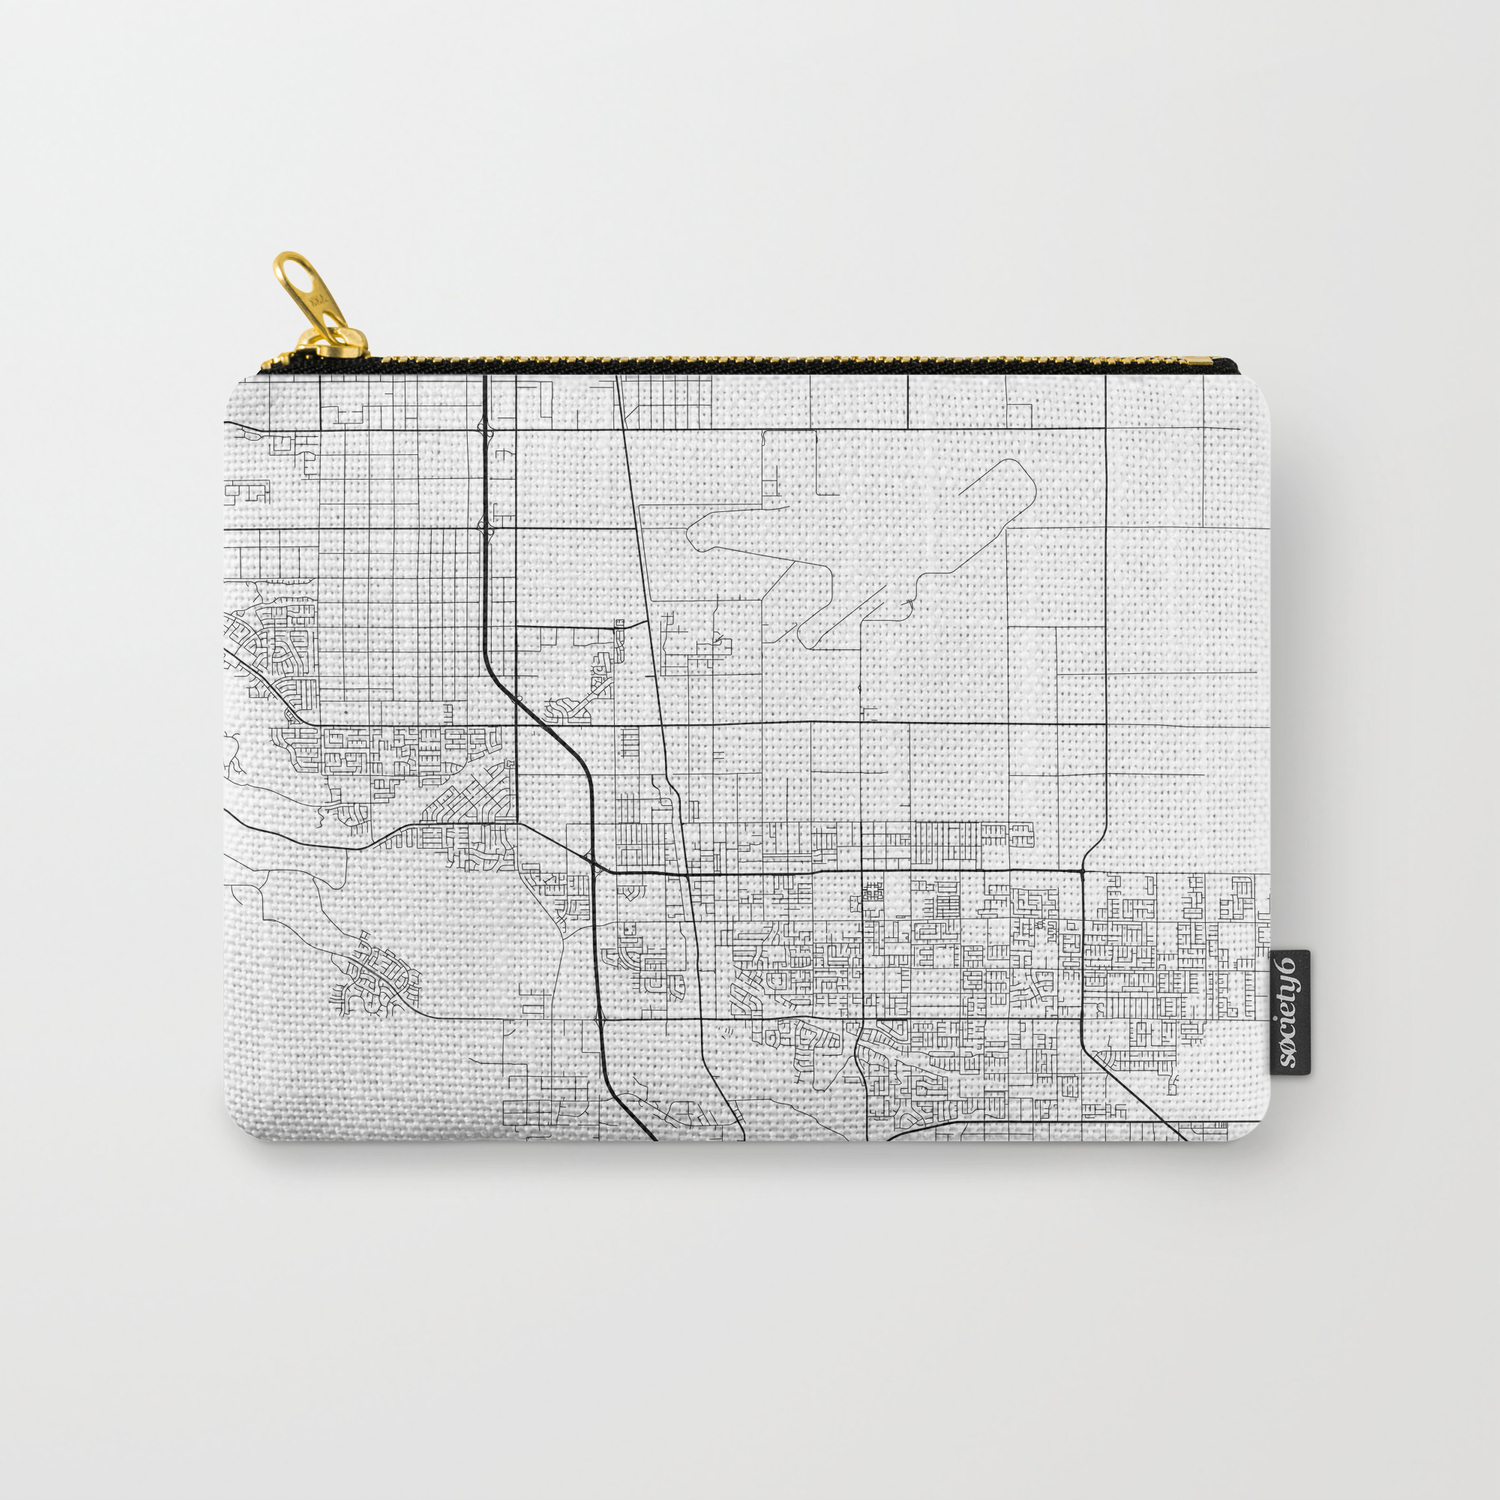 Minimal City Maps - Map Of Palmdale, California, United States Carry-All on cf map, wx map, gh map, world map, br map, pk map, ba map, mc map, labeled us map, de map, sl map, gu map, be map, tz map, 50 states map, university of arizona map, gn map, cx map, ukraine map,